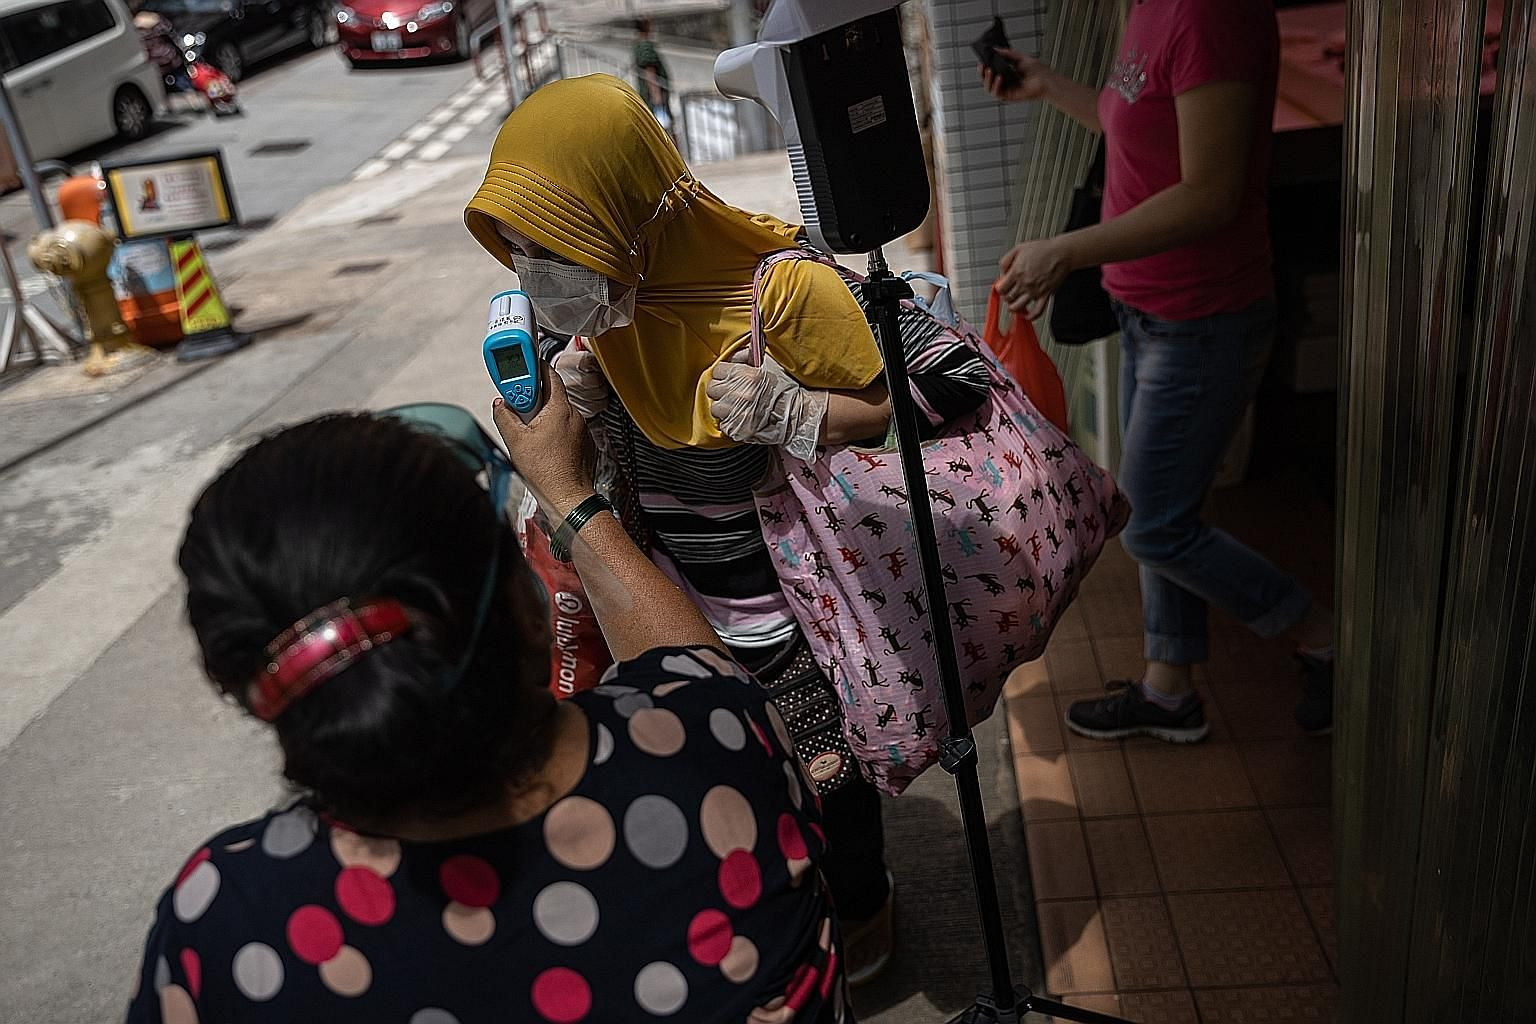 A foreign domestic worker getting her temperature checked before entering a wet market in Hong Kong yesterday. The health authorities yesterday reported 89 new confirmed Covid-19 cases, bringing the total tally of cases in the city to 3,938. PHOTO: E